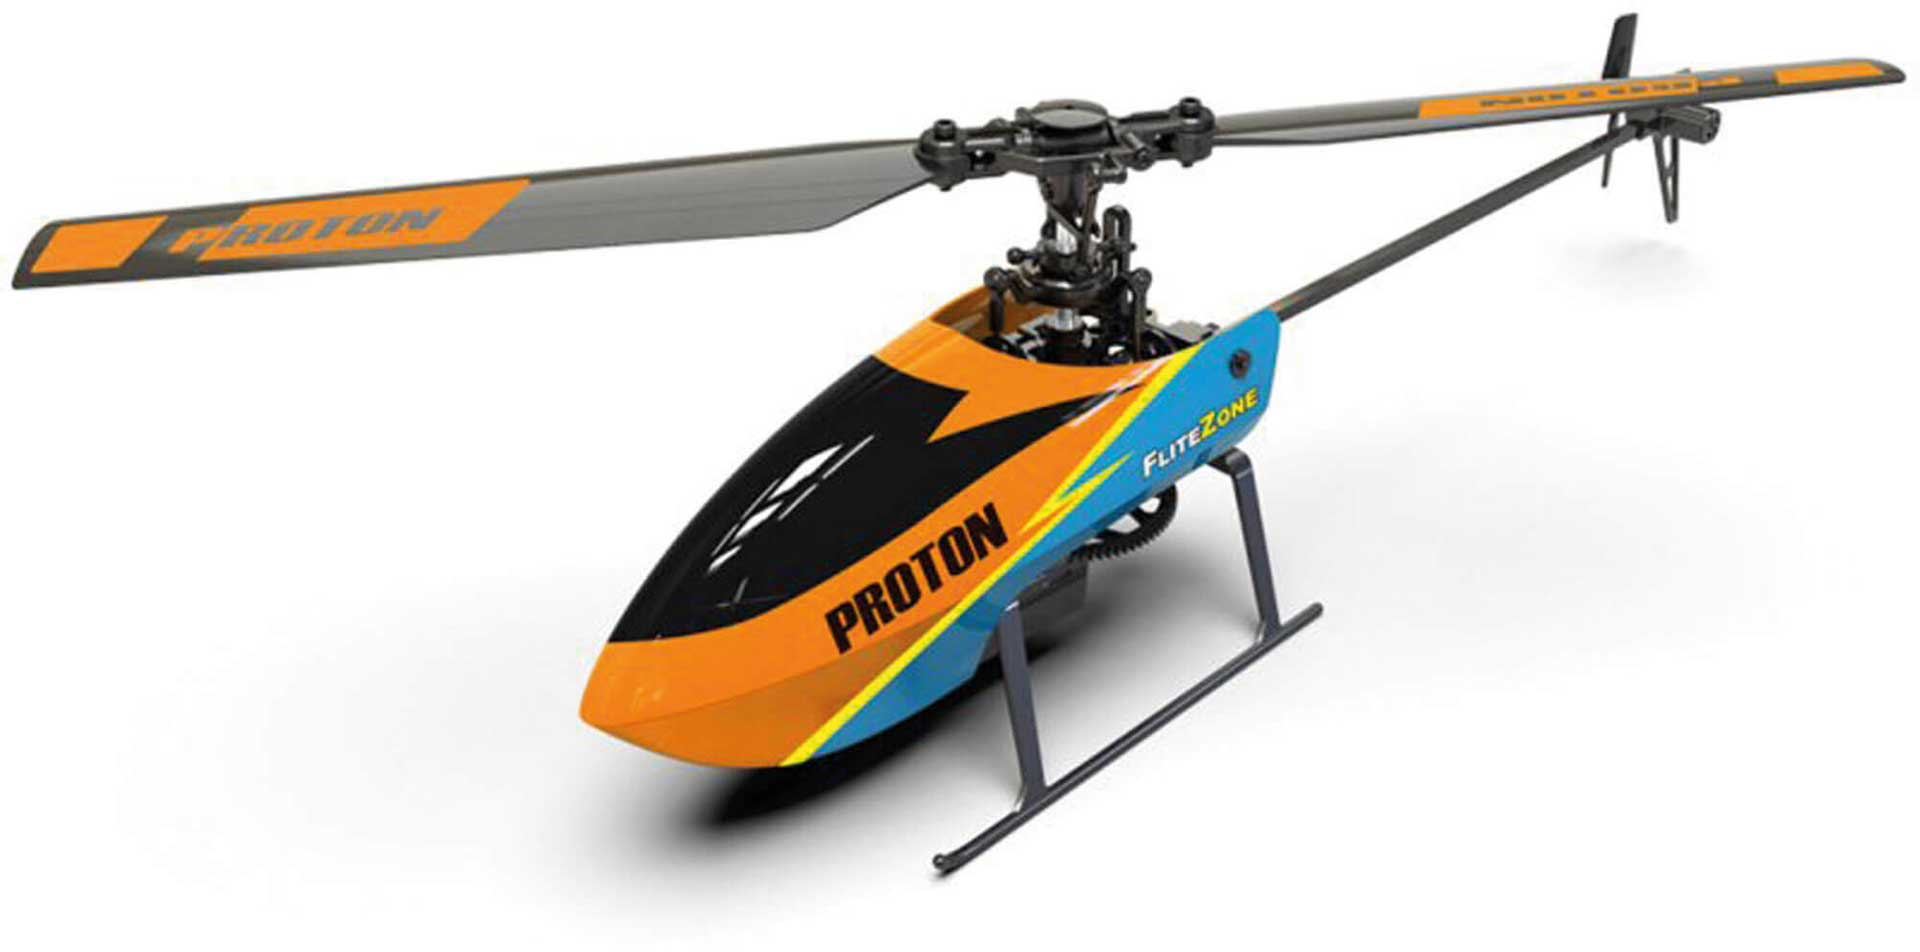 PICHLER Helicopter Proton RTF 2,4GHz Hubschrauber / Helikopter